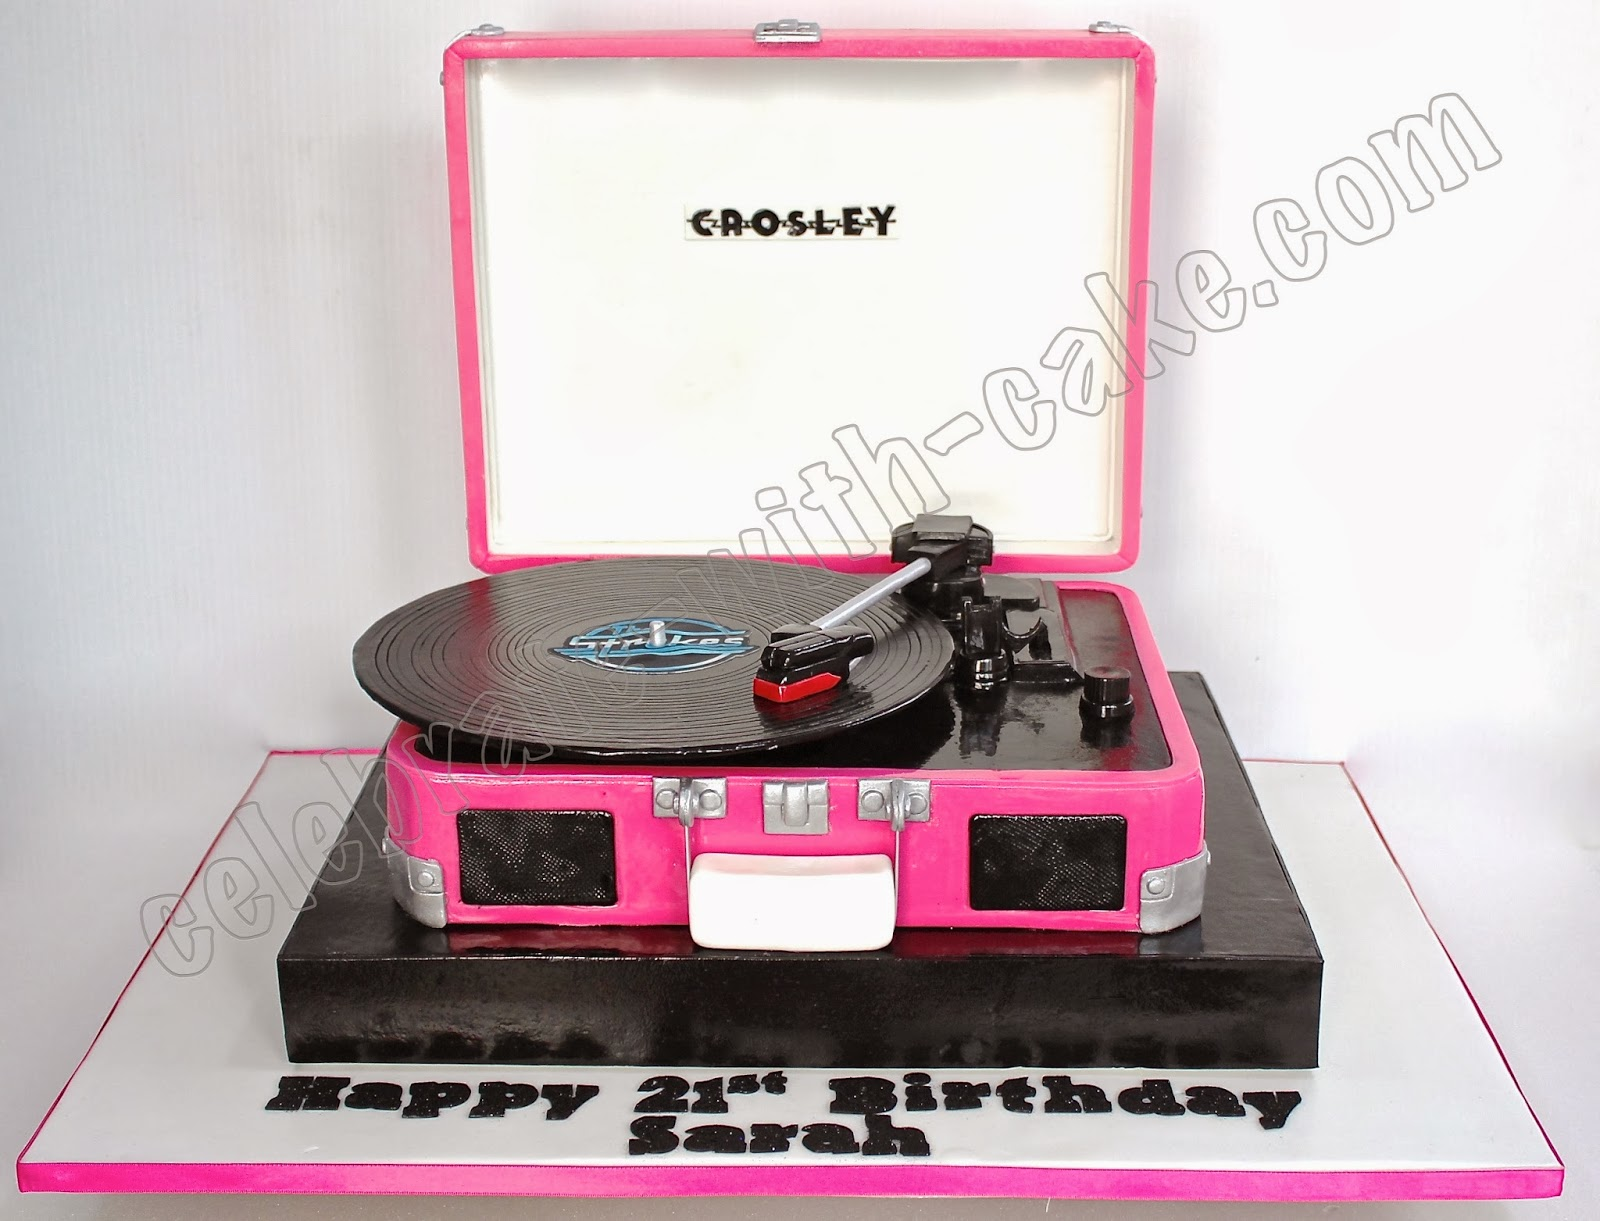 3d Sculpted Crosley Record Player 21st Birthday Cake